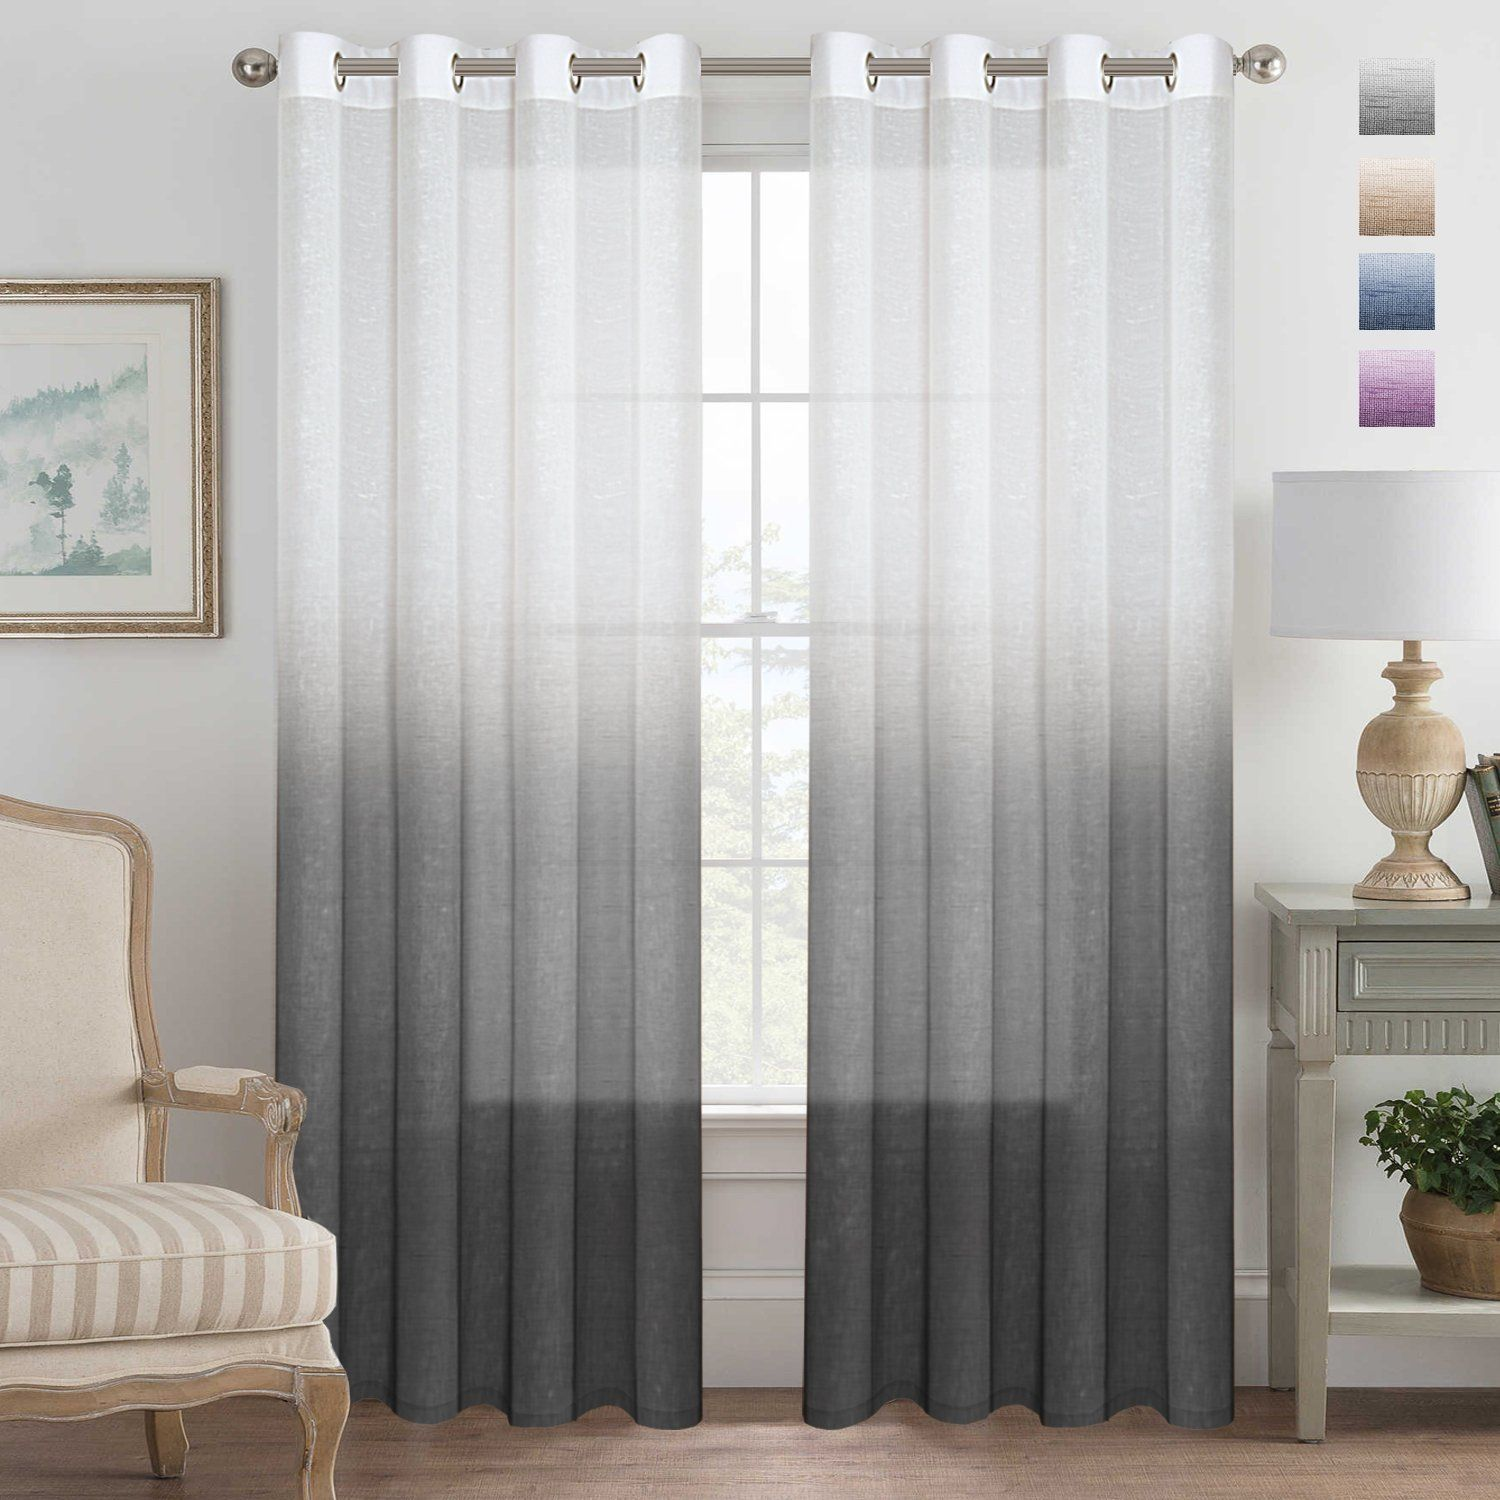 25 Curtains You Can Buy Online Ombre Curtains Grey Curtains